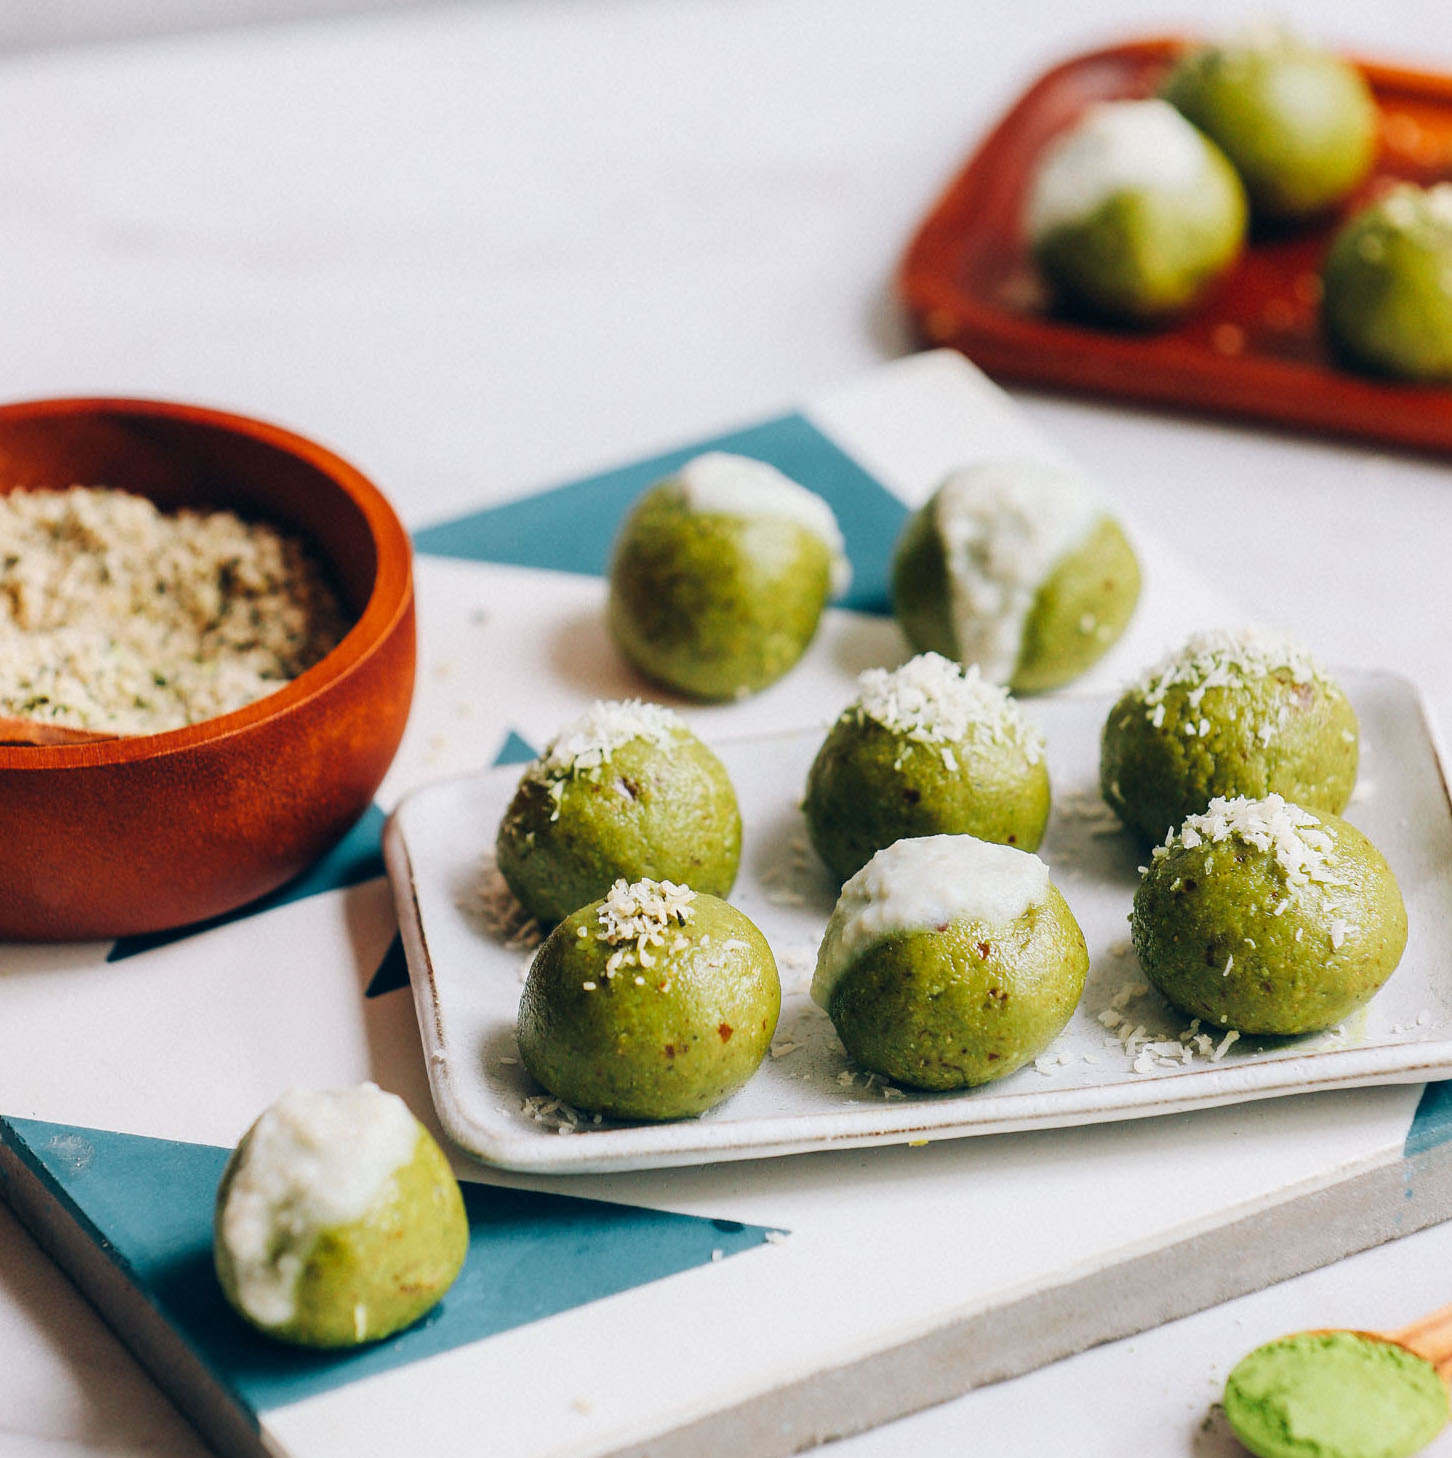 Tray of low sugar, date-sweetened Matcha Bliss Balls beside a bowl of hemp seeds